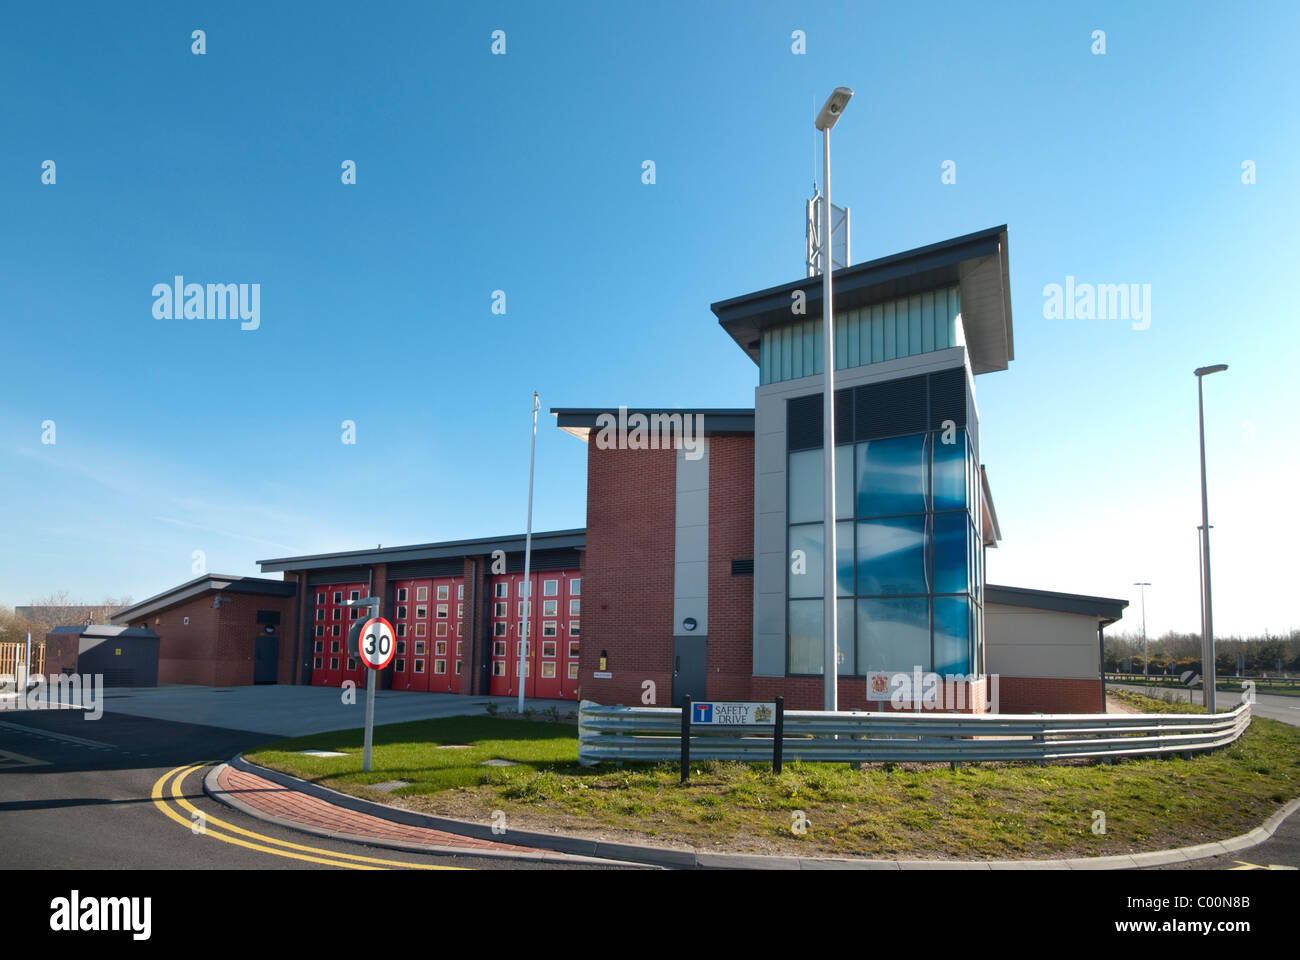 Marshes End Fire Station, Dorset Fire and Rescue Service, Poole exterior - Stock Image